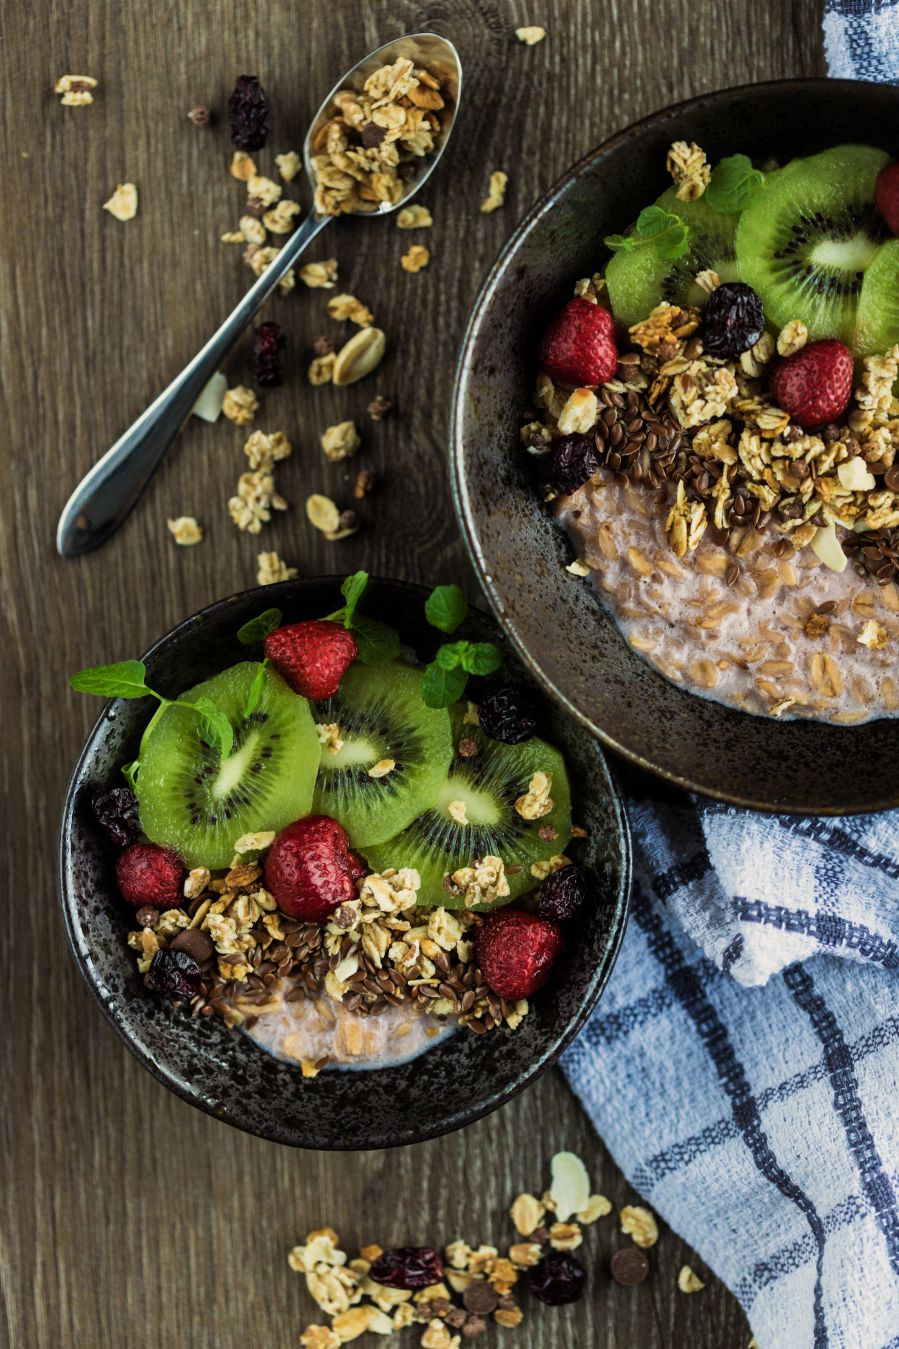 PLANT-BASED DIET FOR BEGINNERS: WHAT TO EXPECT?